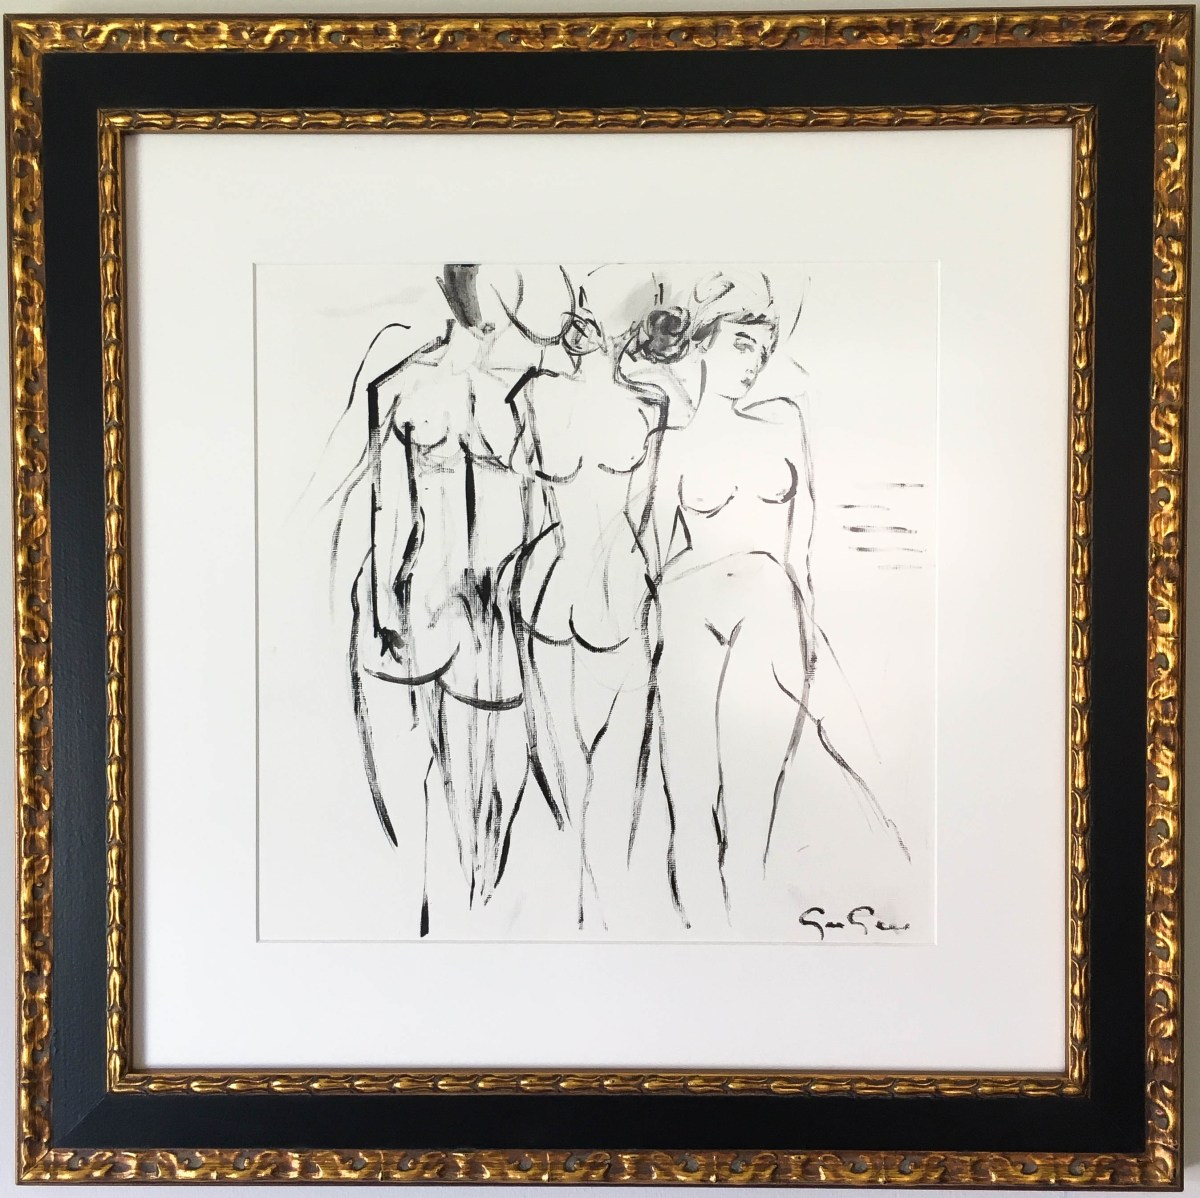 gee-gee-collins-framed-figure-study